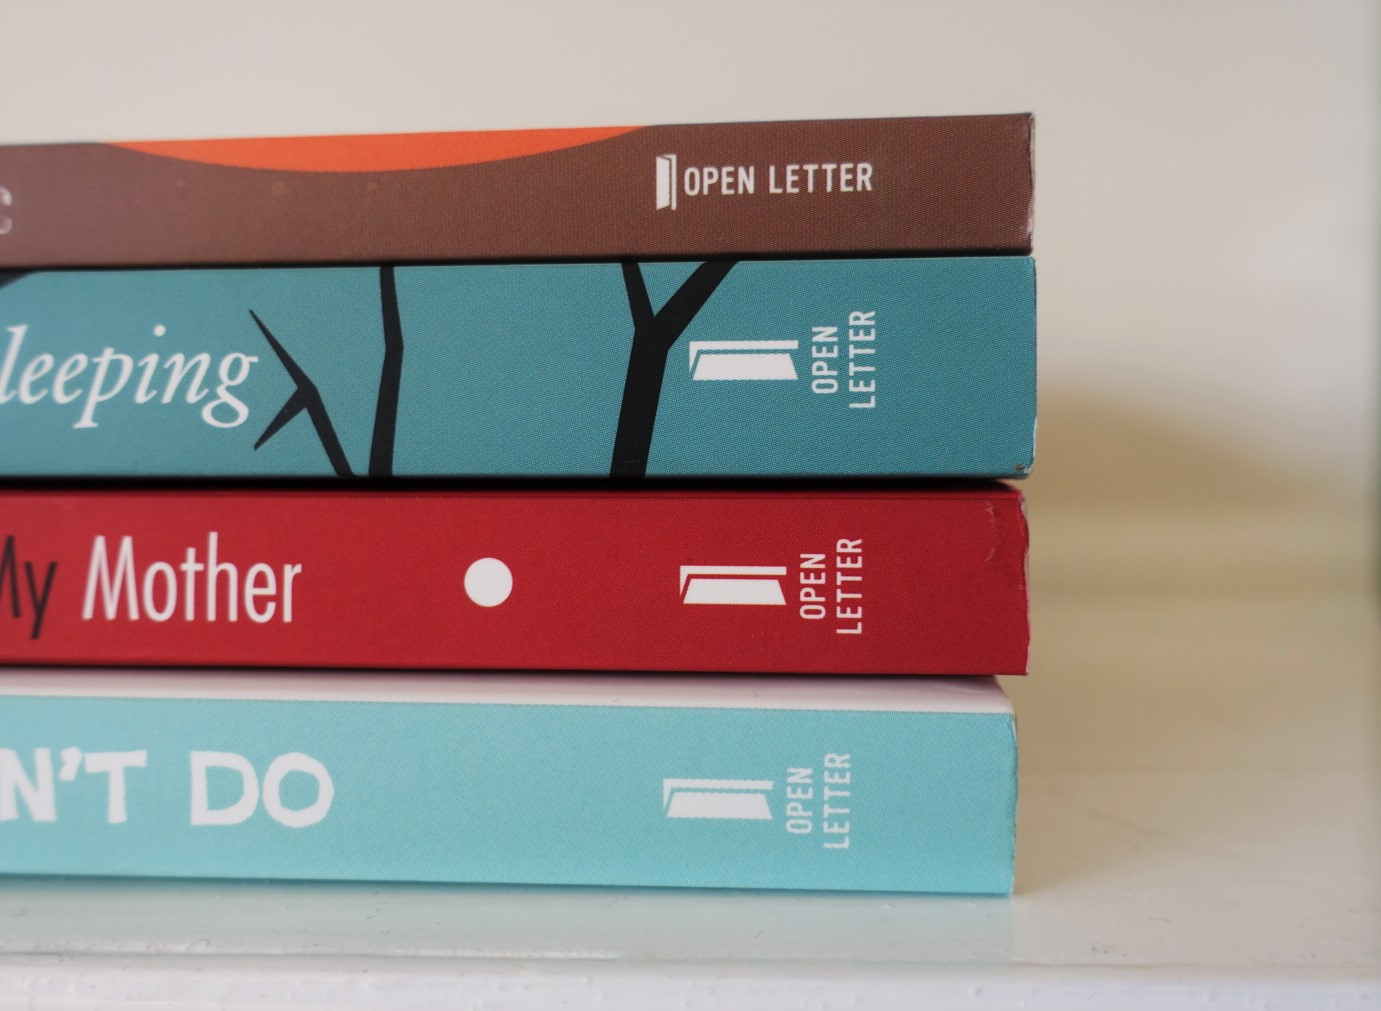 open letter books